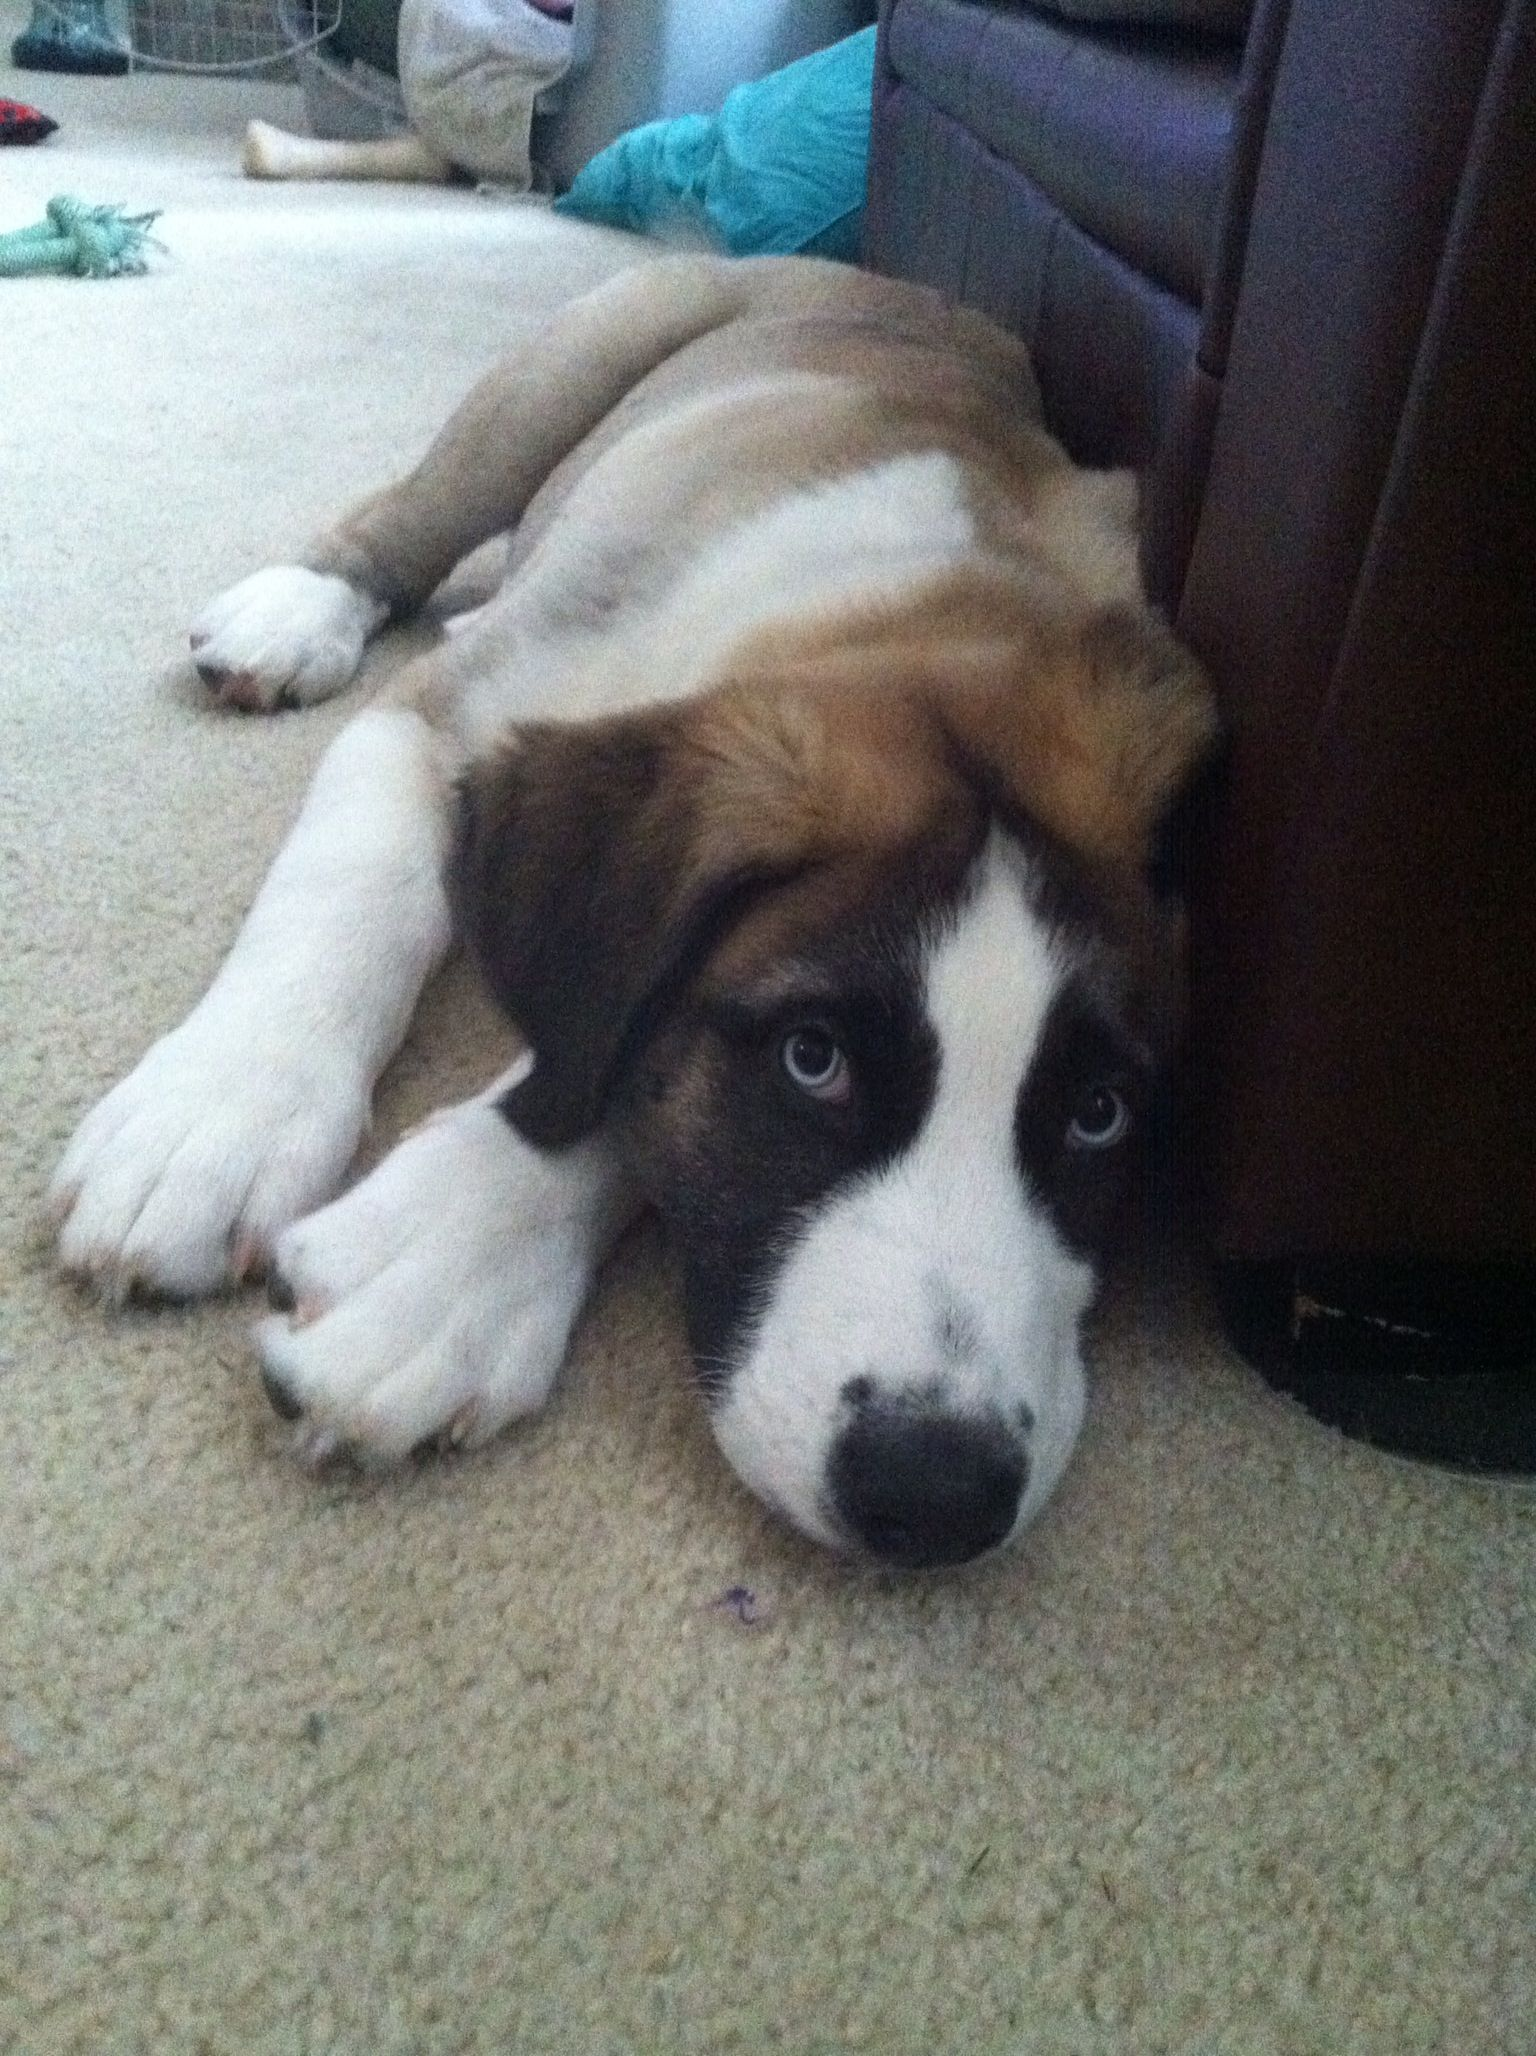 Mowgli-St Bernard husky mix | Mixed breed Dogs/Pups | Pinterest